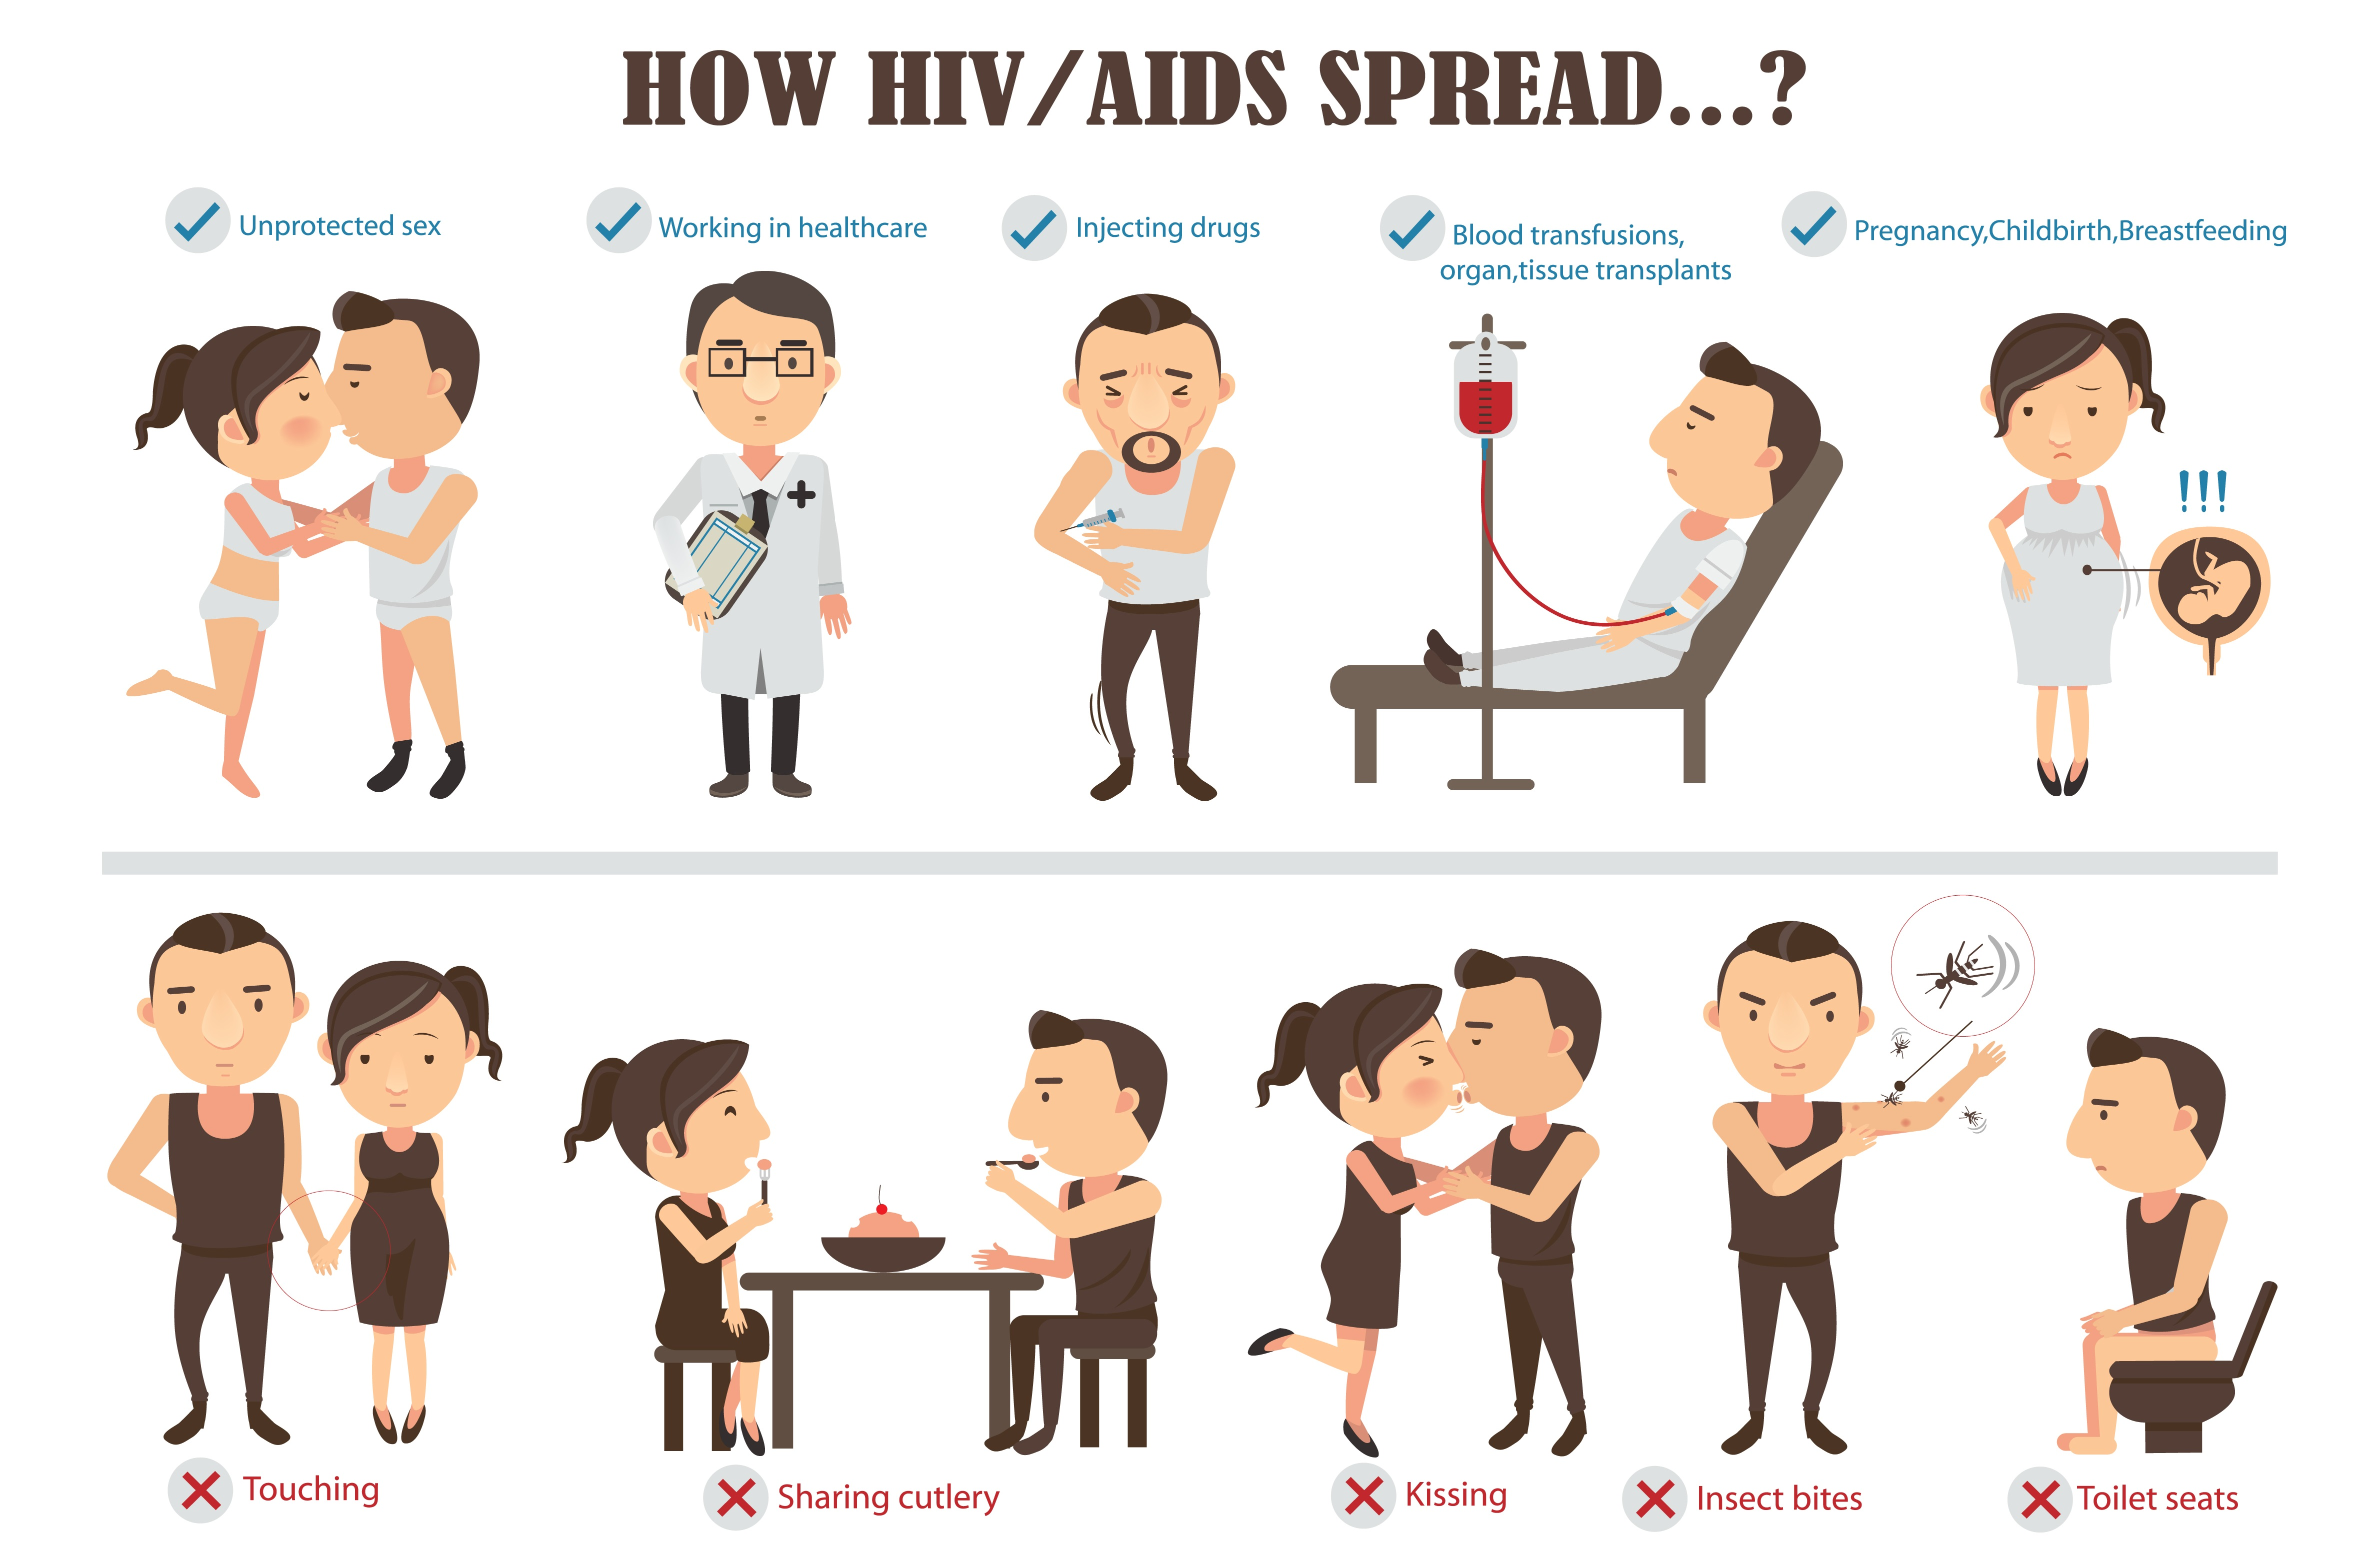 How HIV/AIDS spread